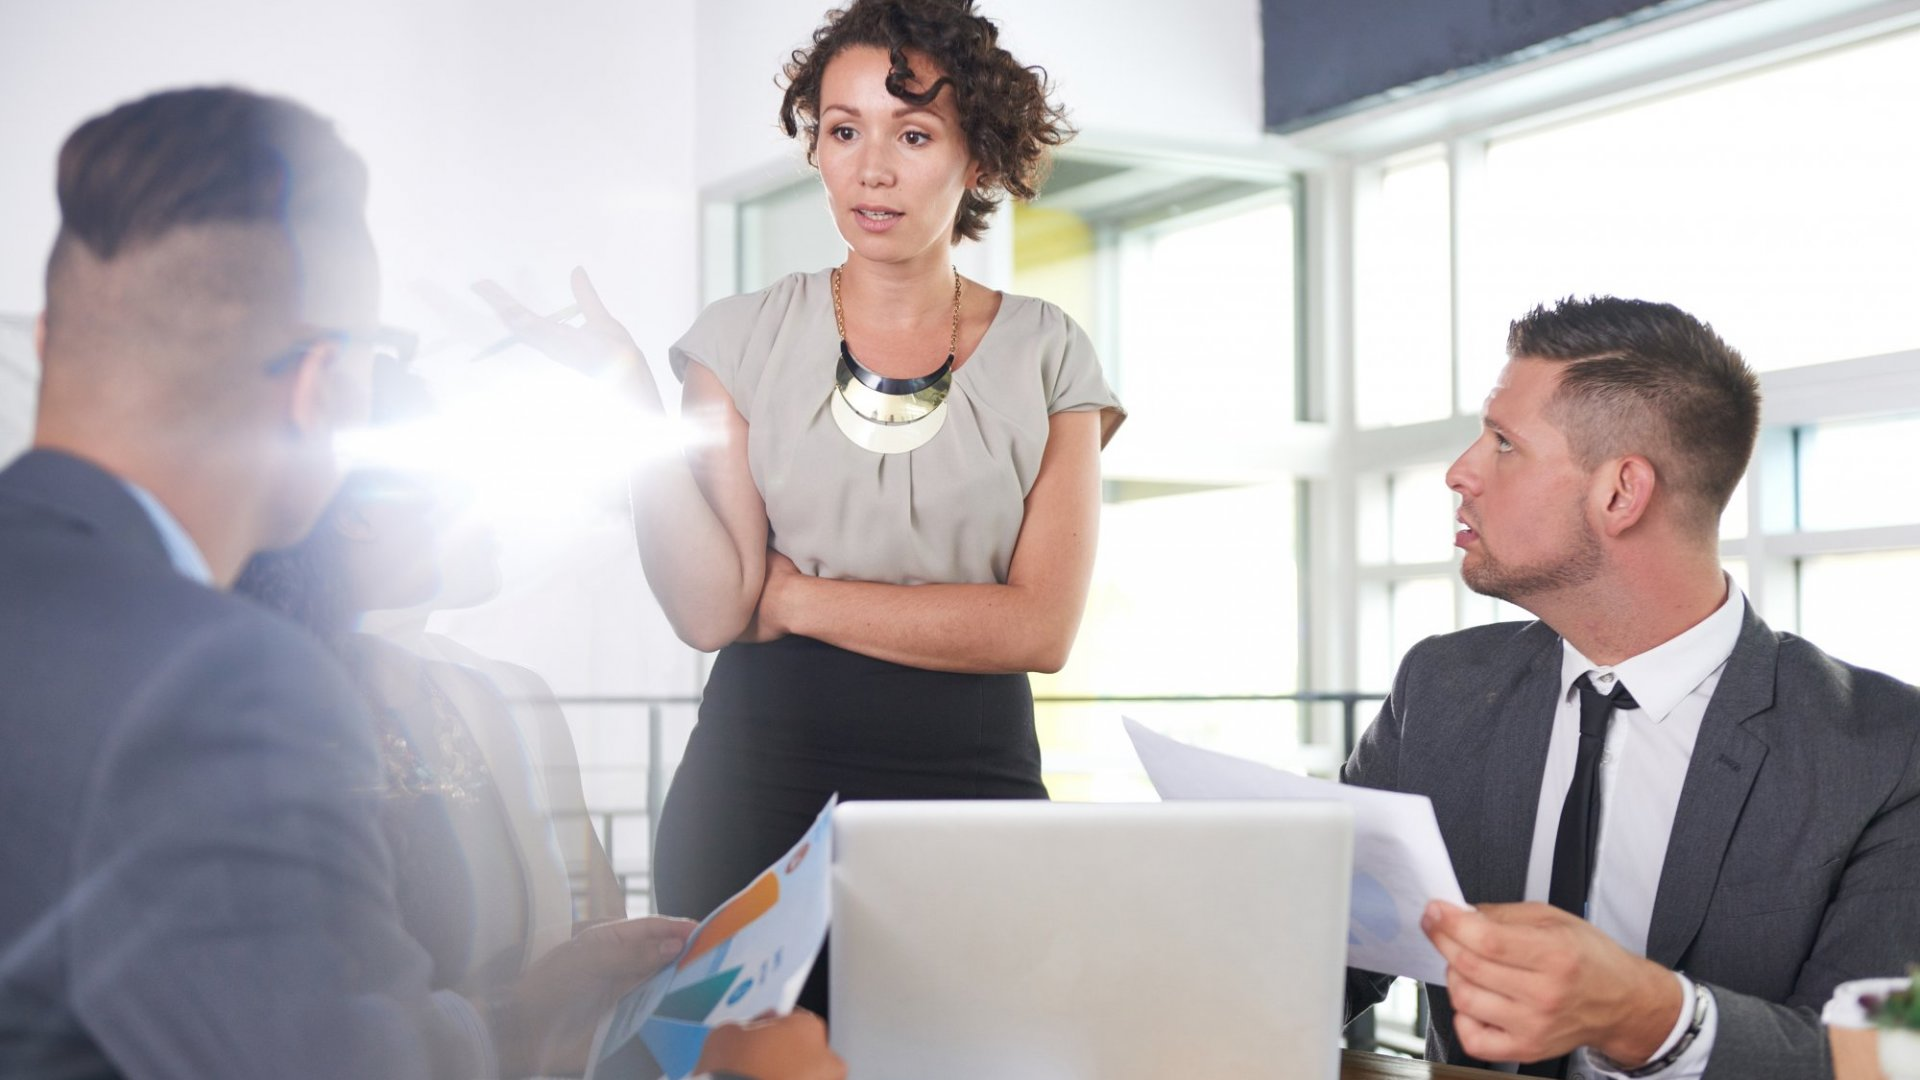 6 Ways to Protect Yourself When Your Boss Takes Credit For Your Work